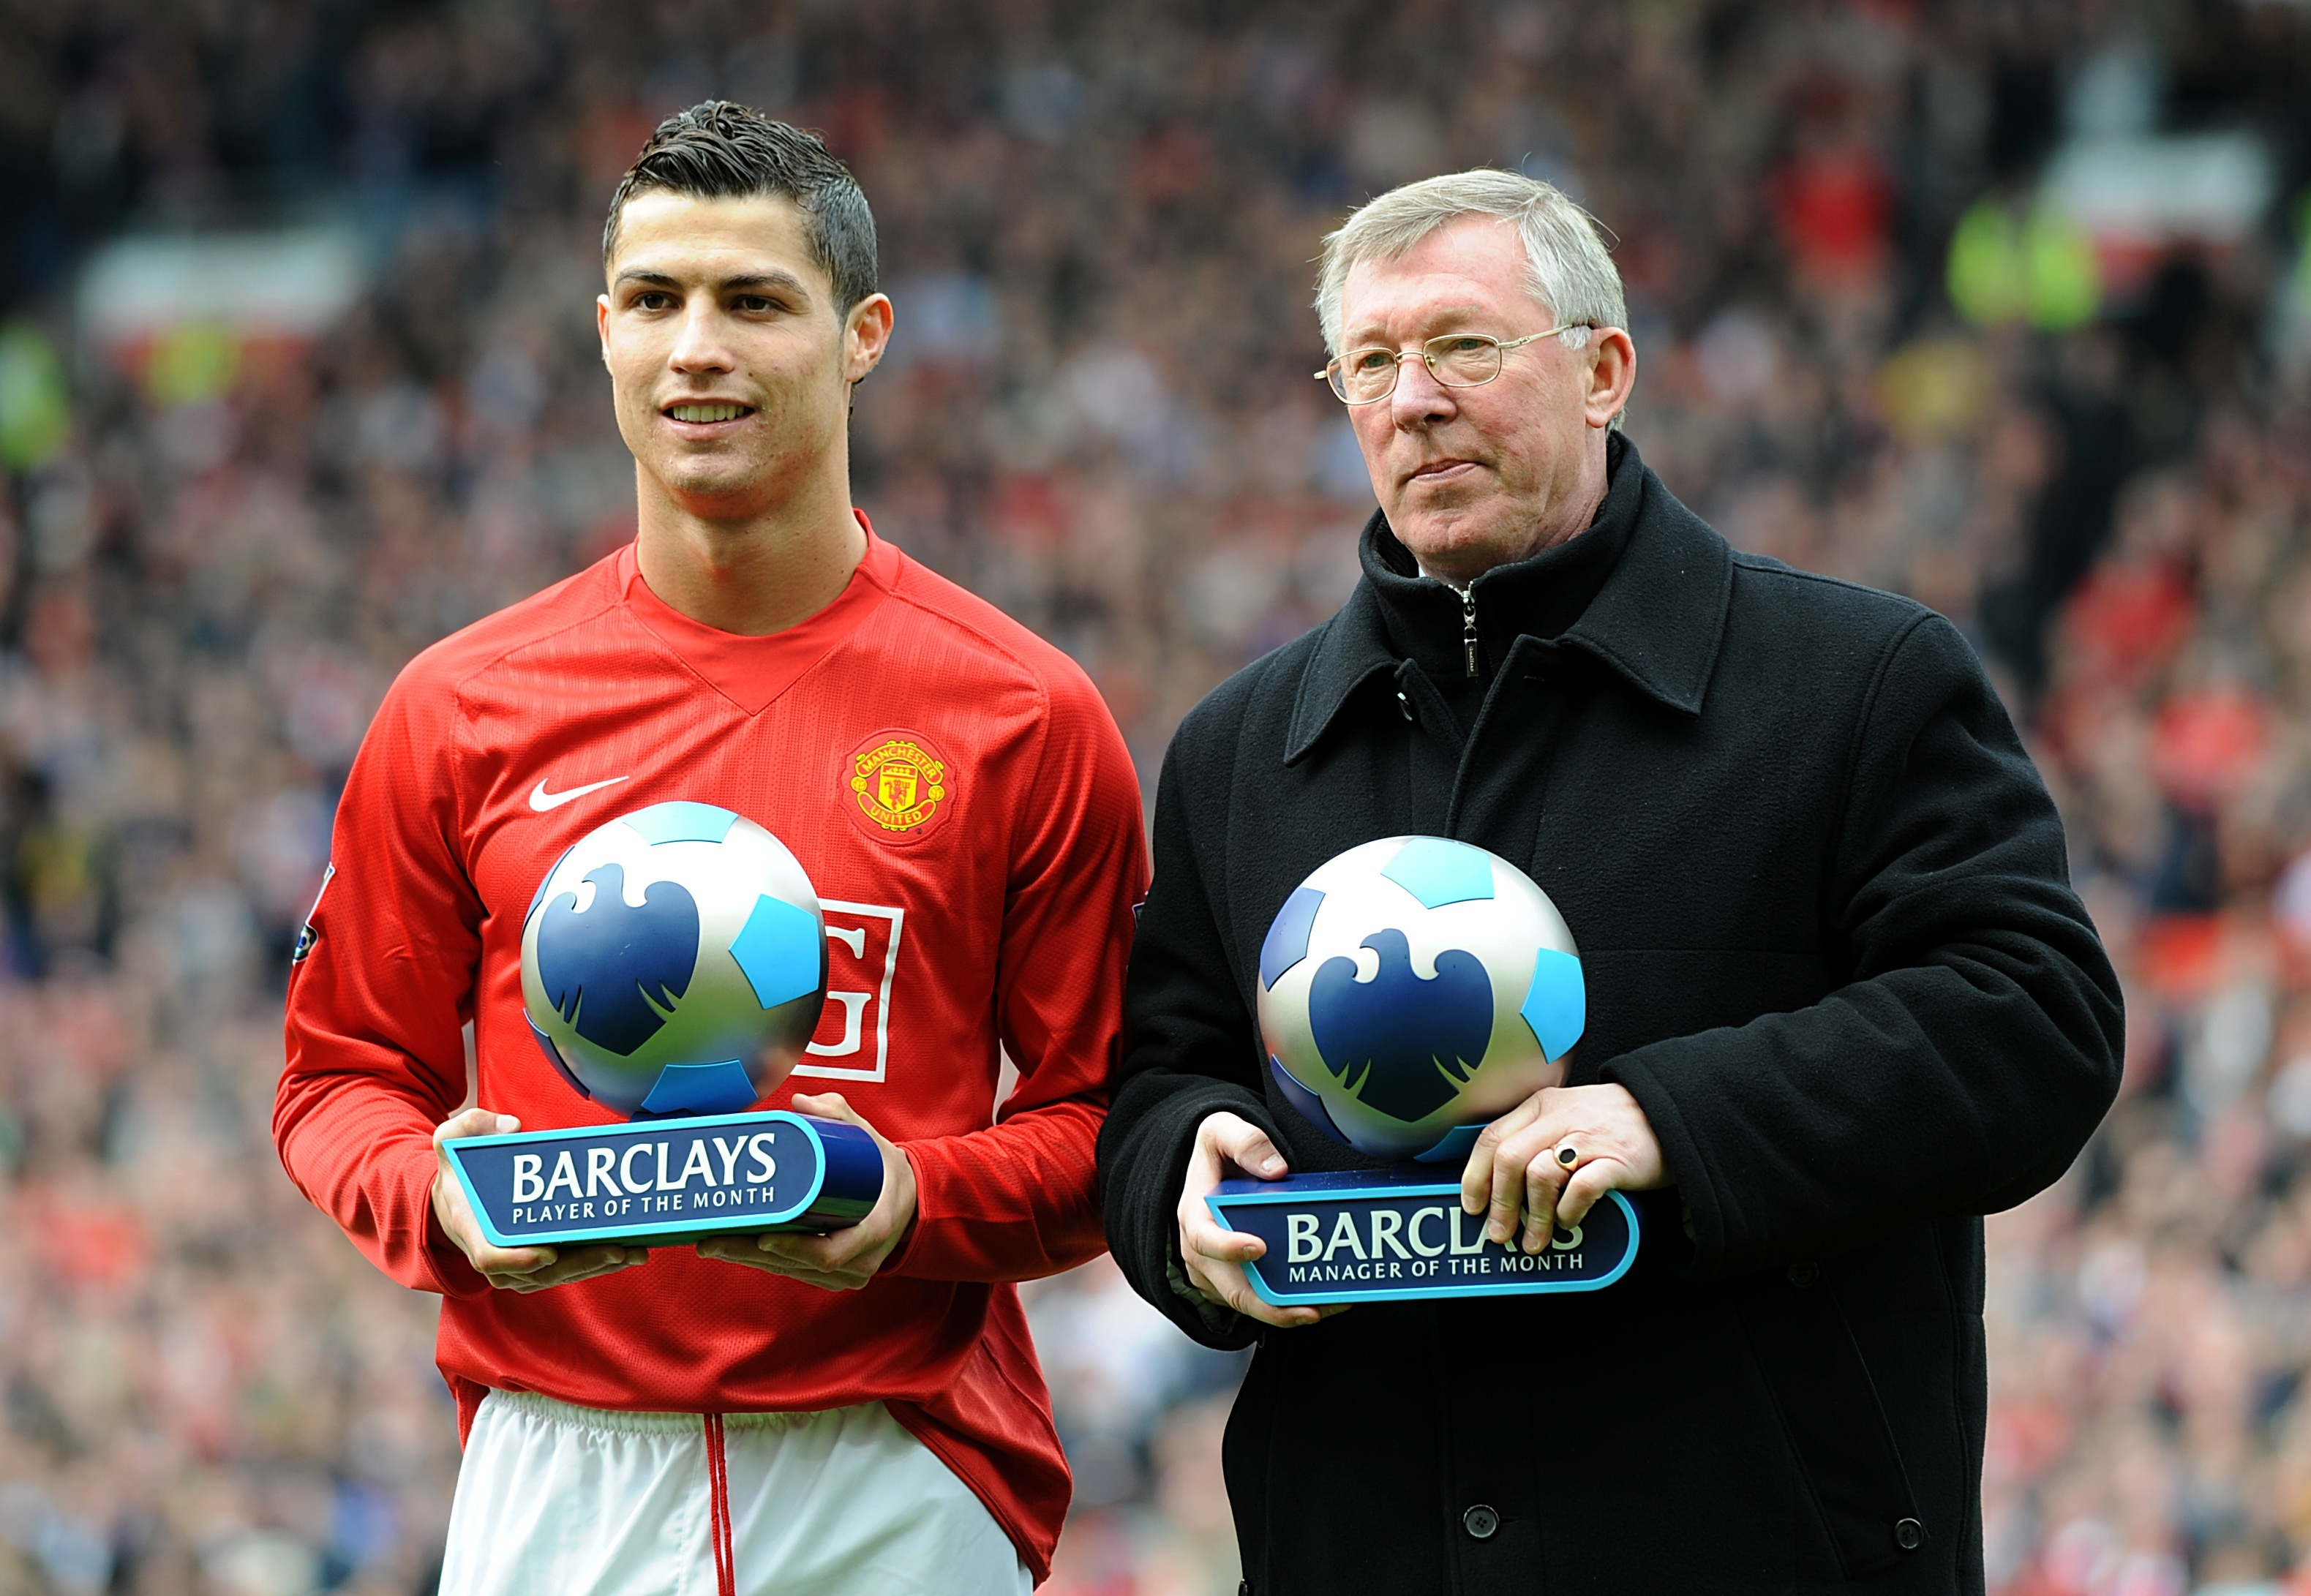 Cristiano Ronaldo and Sir Alex Ferguson receive trophies during their time at Manchester United